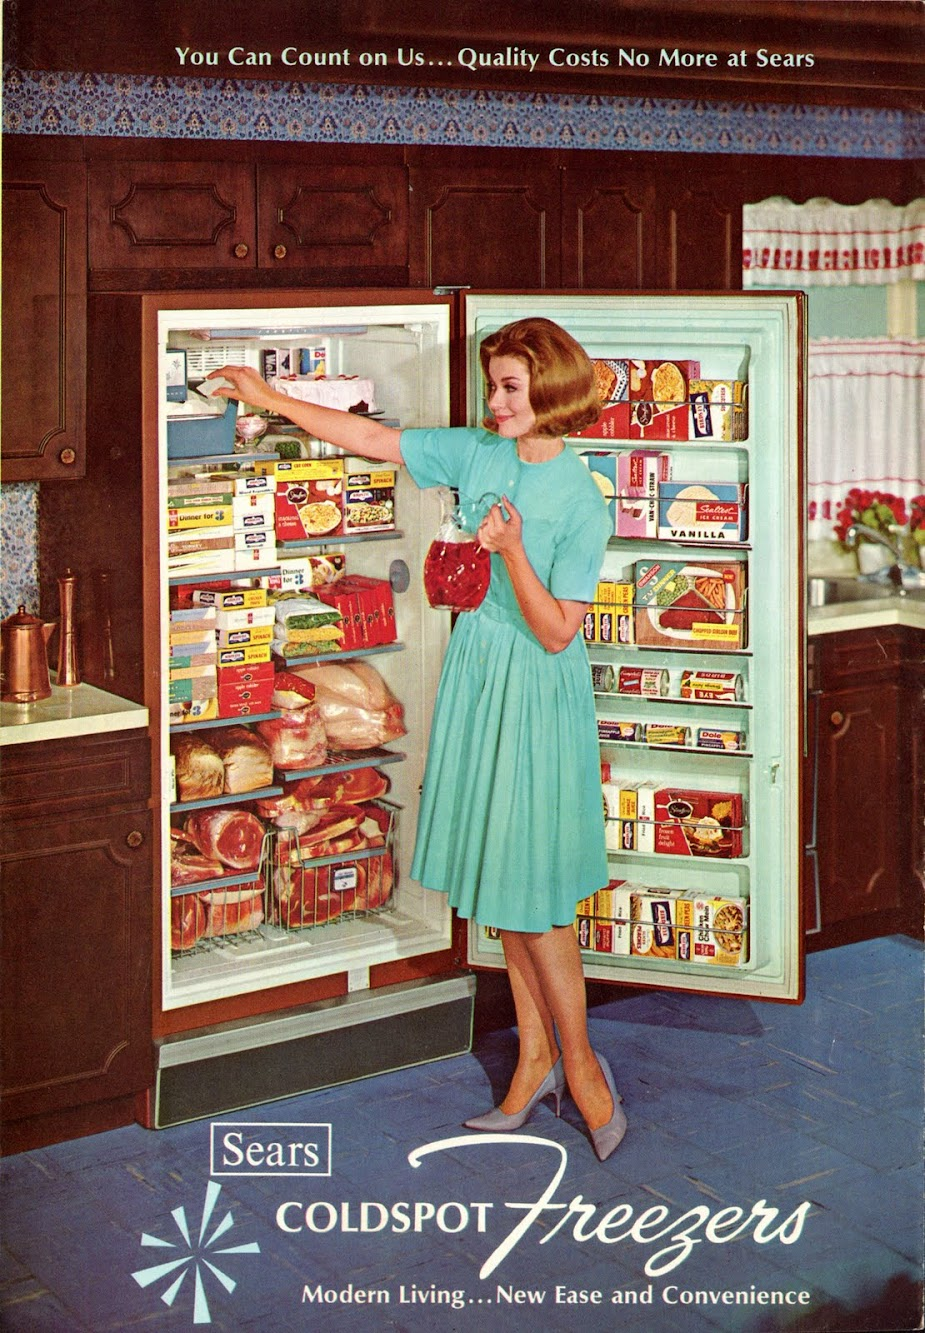 Sears Coldspot Freezer, 1965